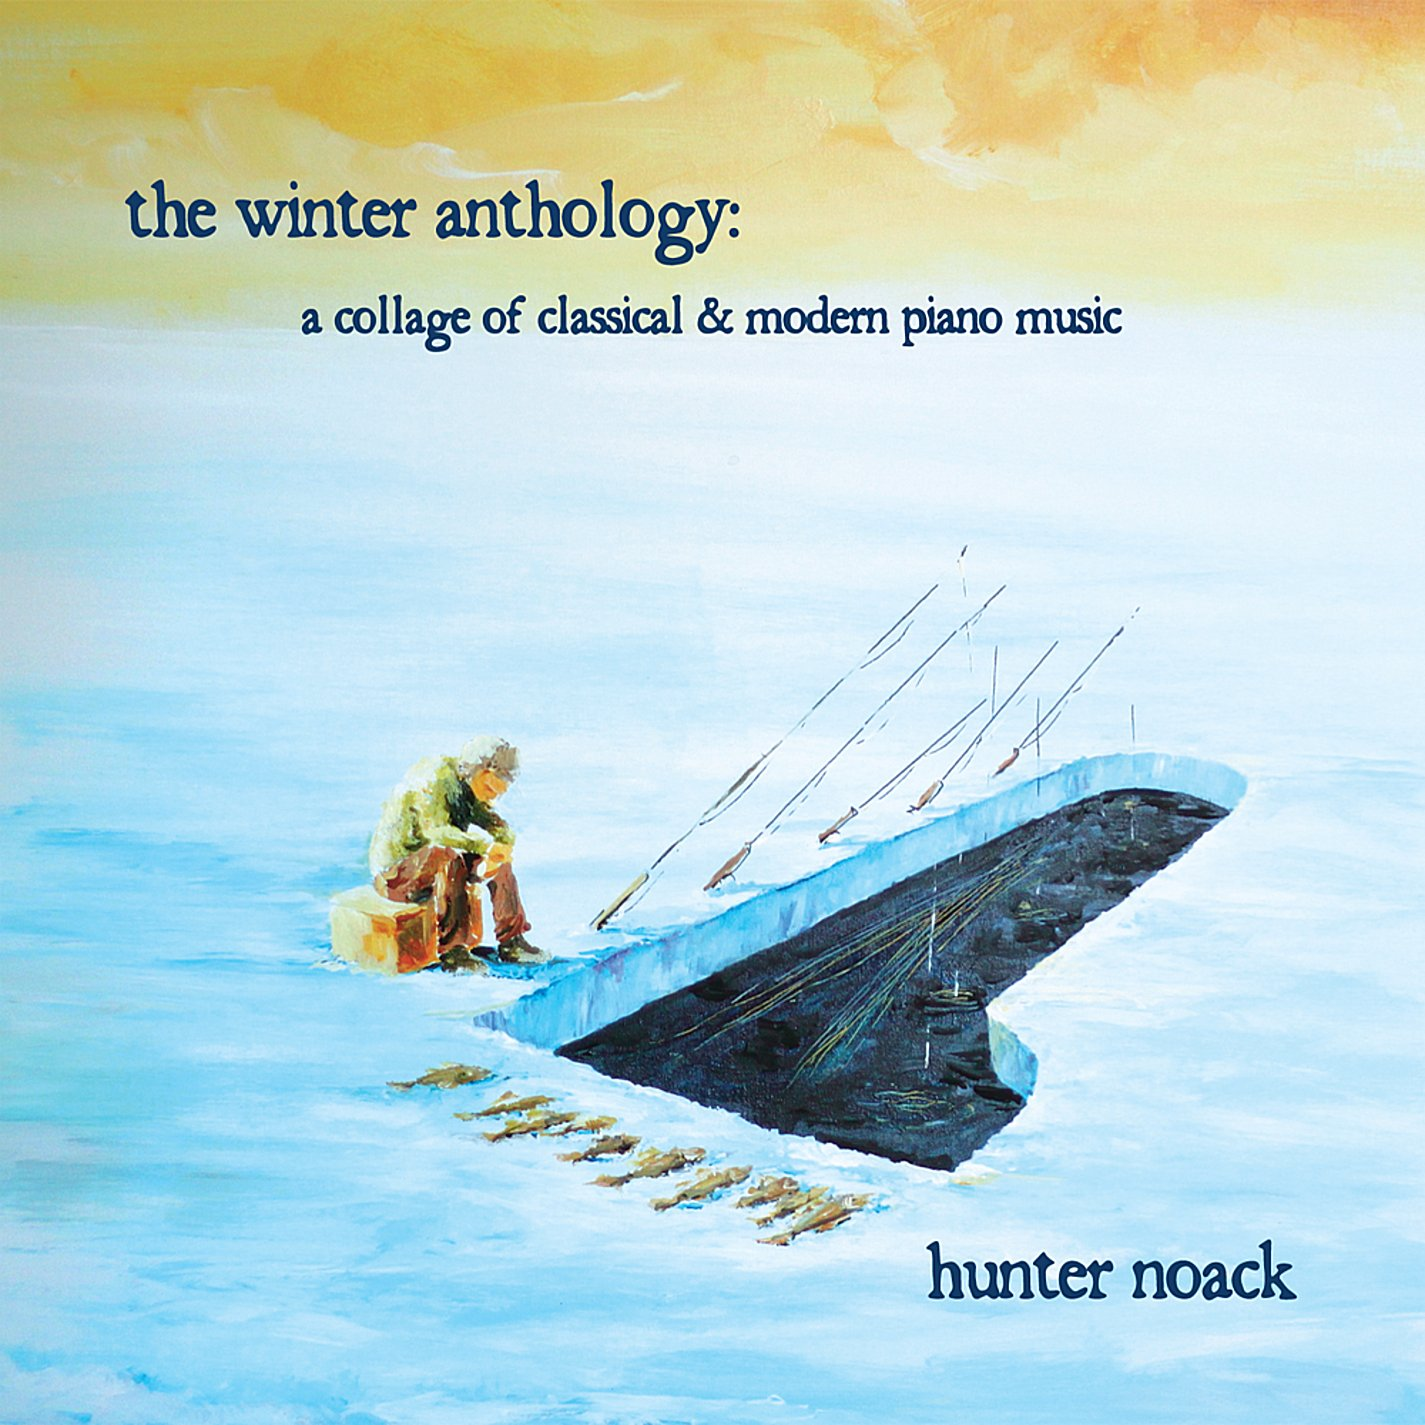 Winter Anthology- a Collage of Classical & Modern